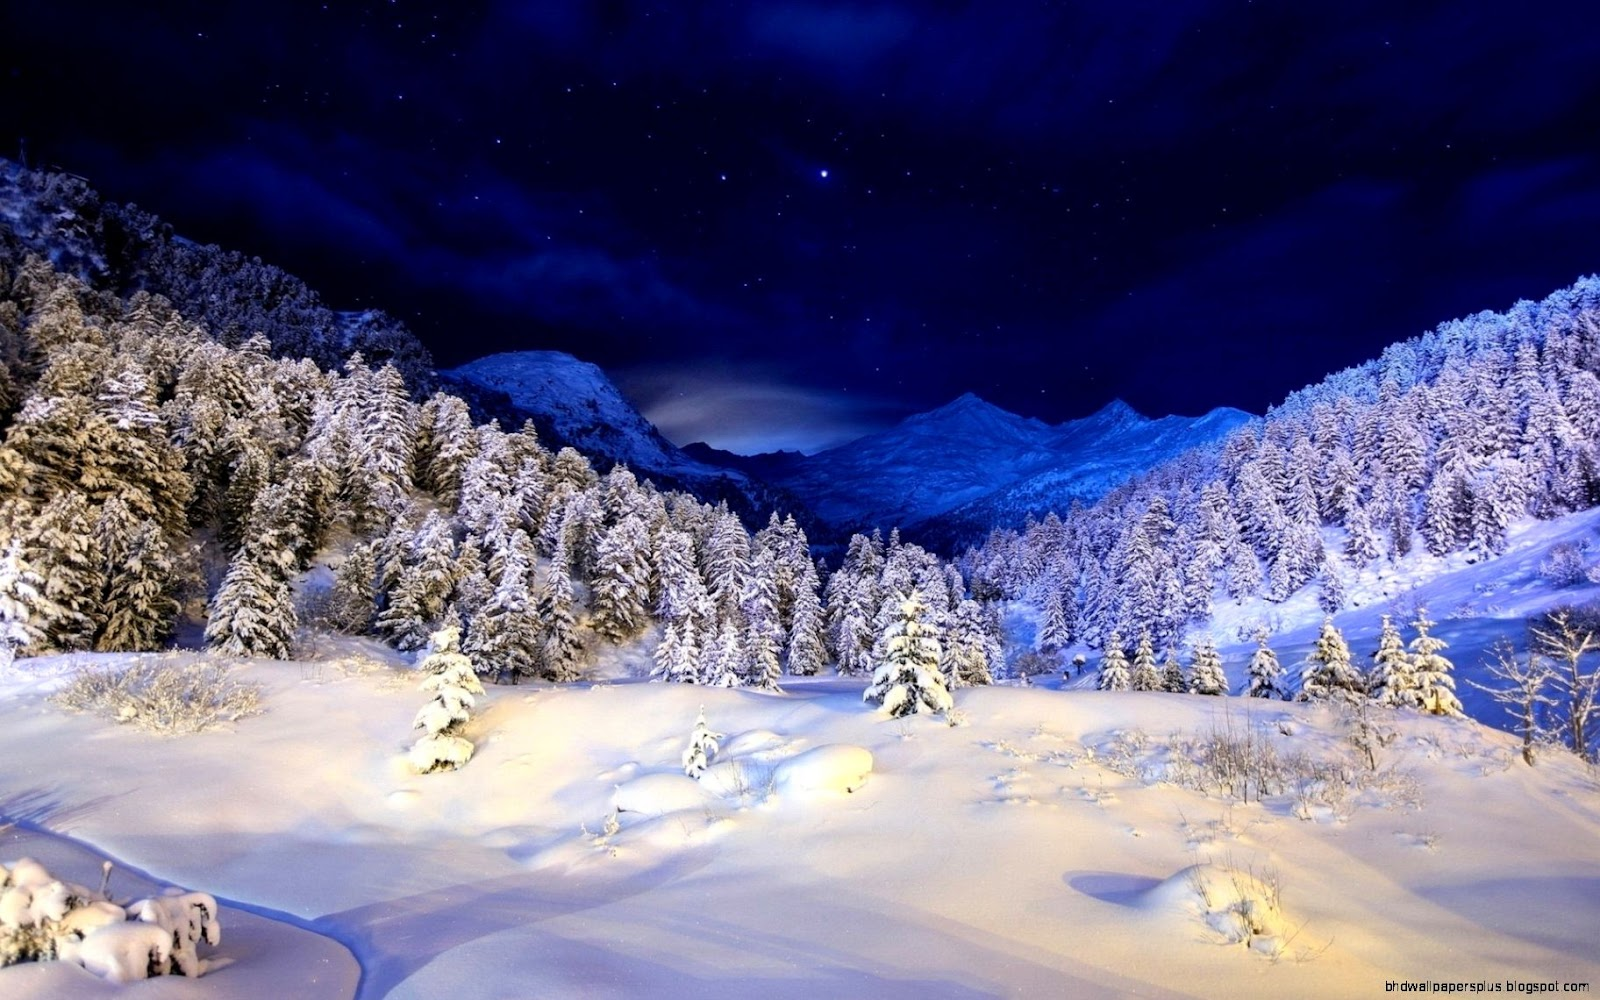 Night Winter Mountain Scenes